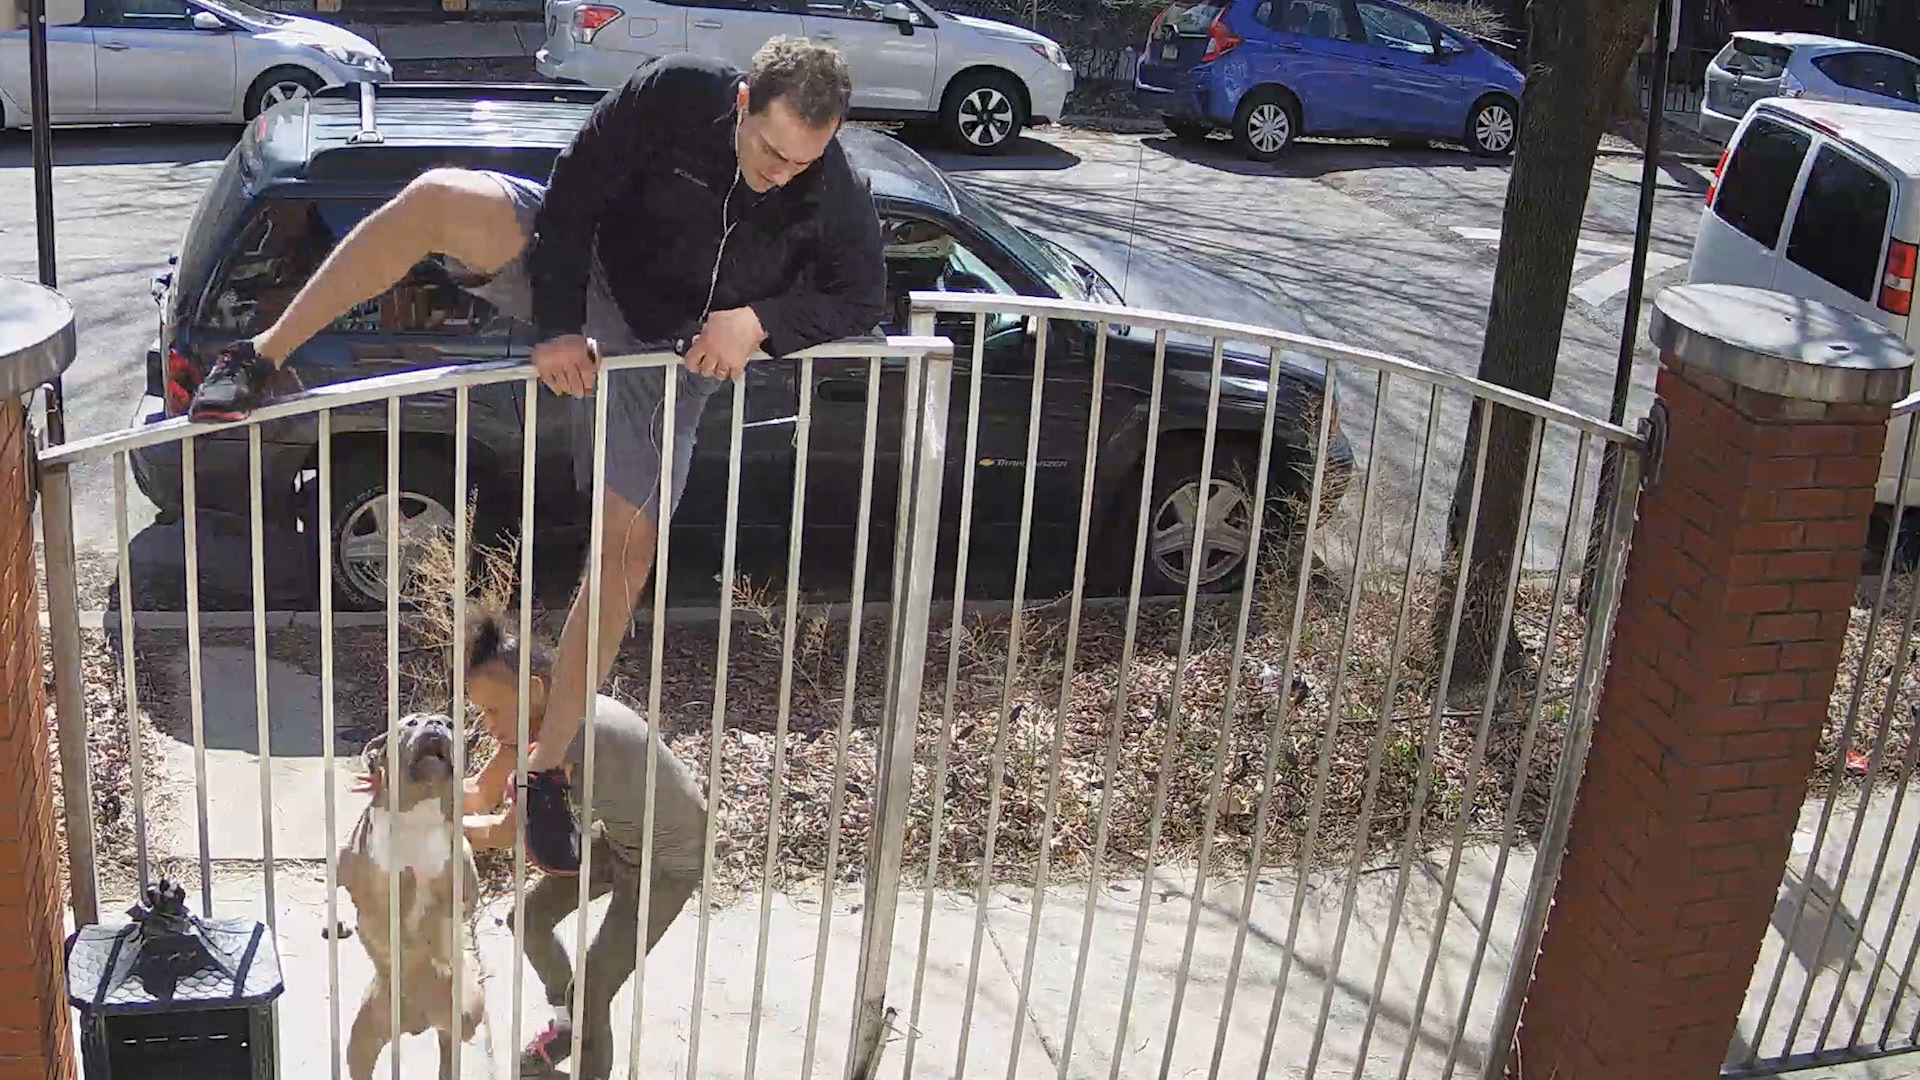 Nick Massuci escapes a pit bull attack on a North Side sidewalk by hopping on top of a fence.